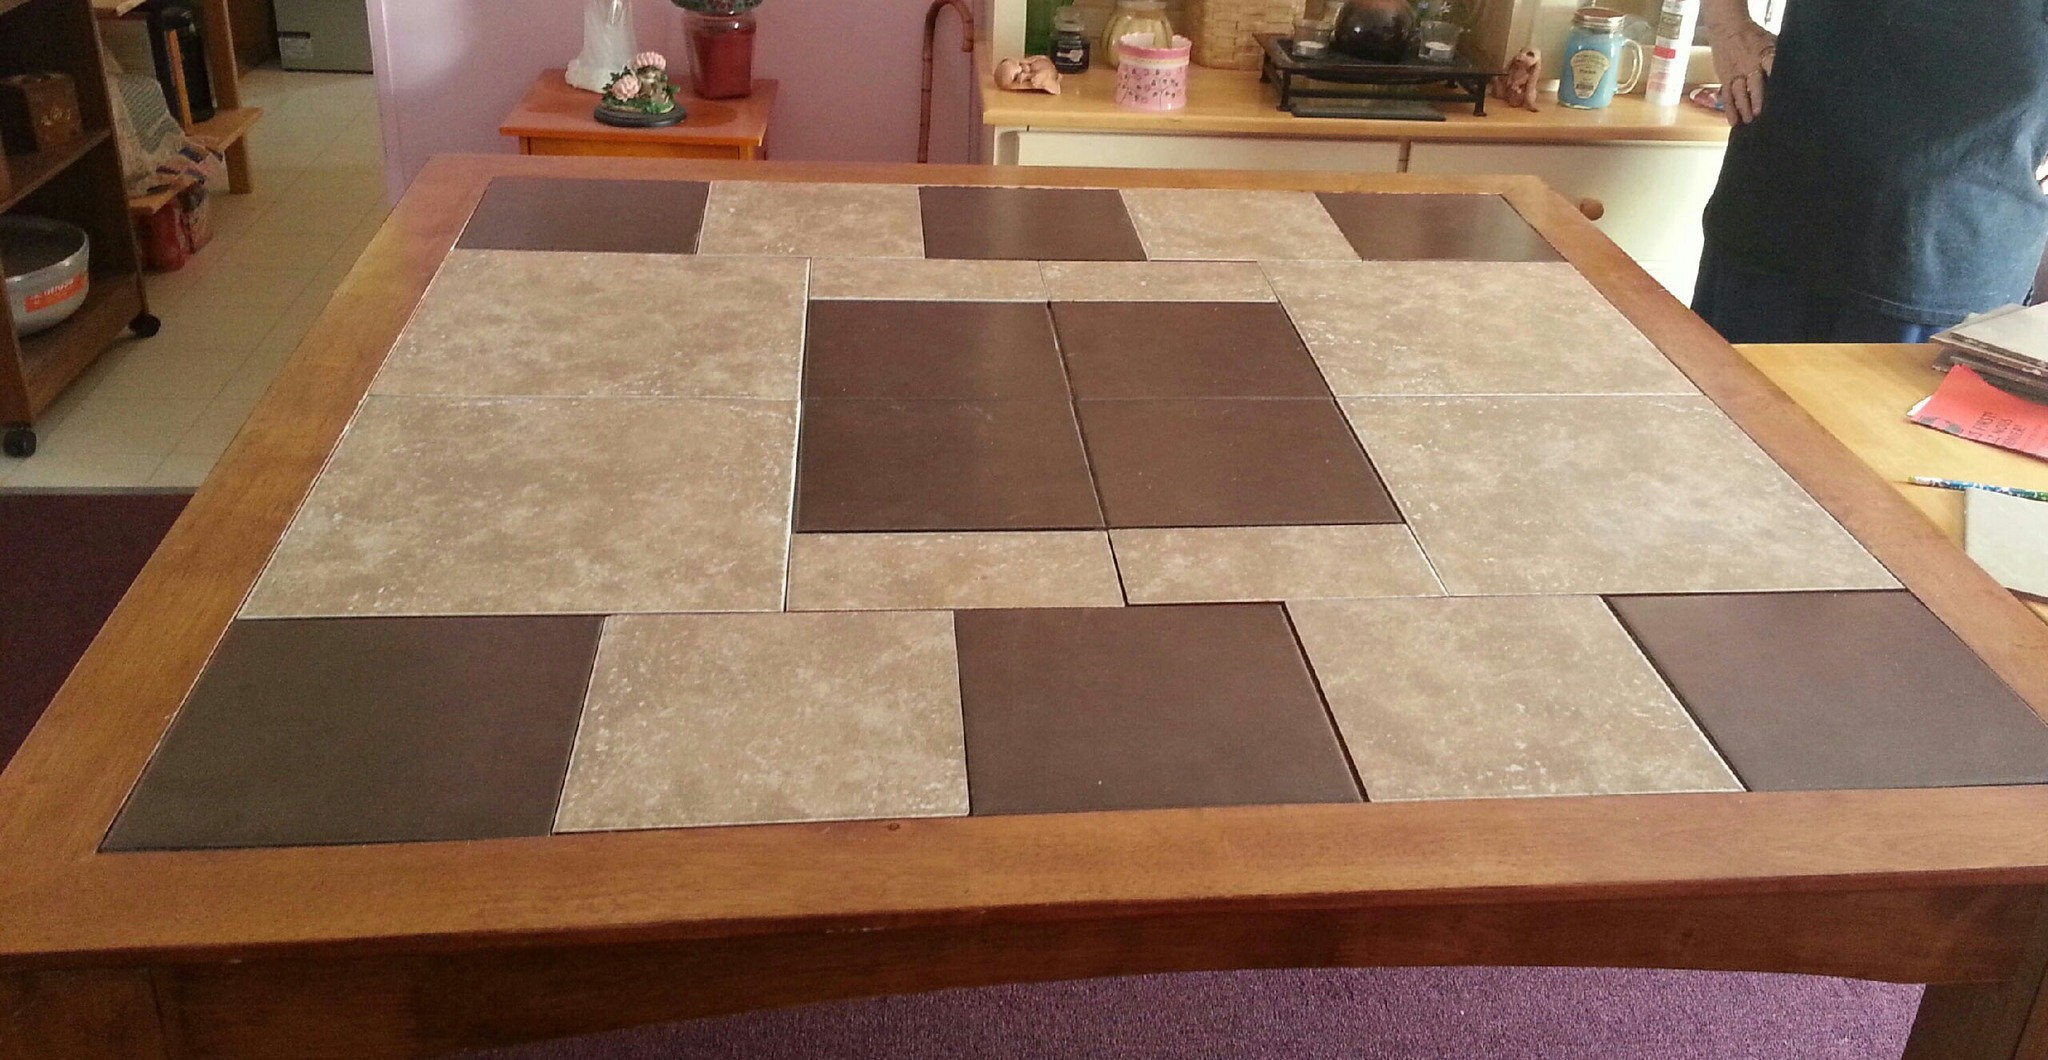 Ceramic Tile And Wood Play Well Together In A Tabletop Silive Com